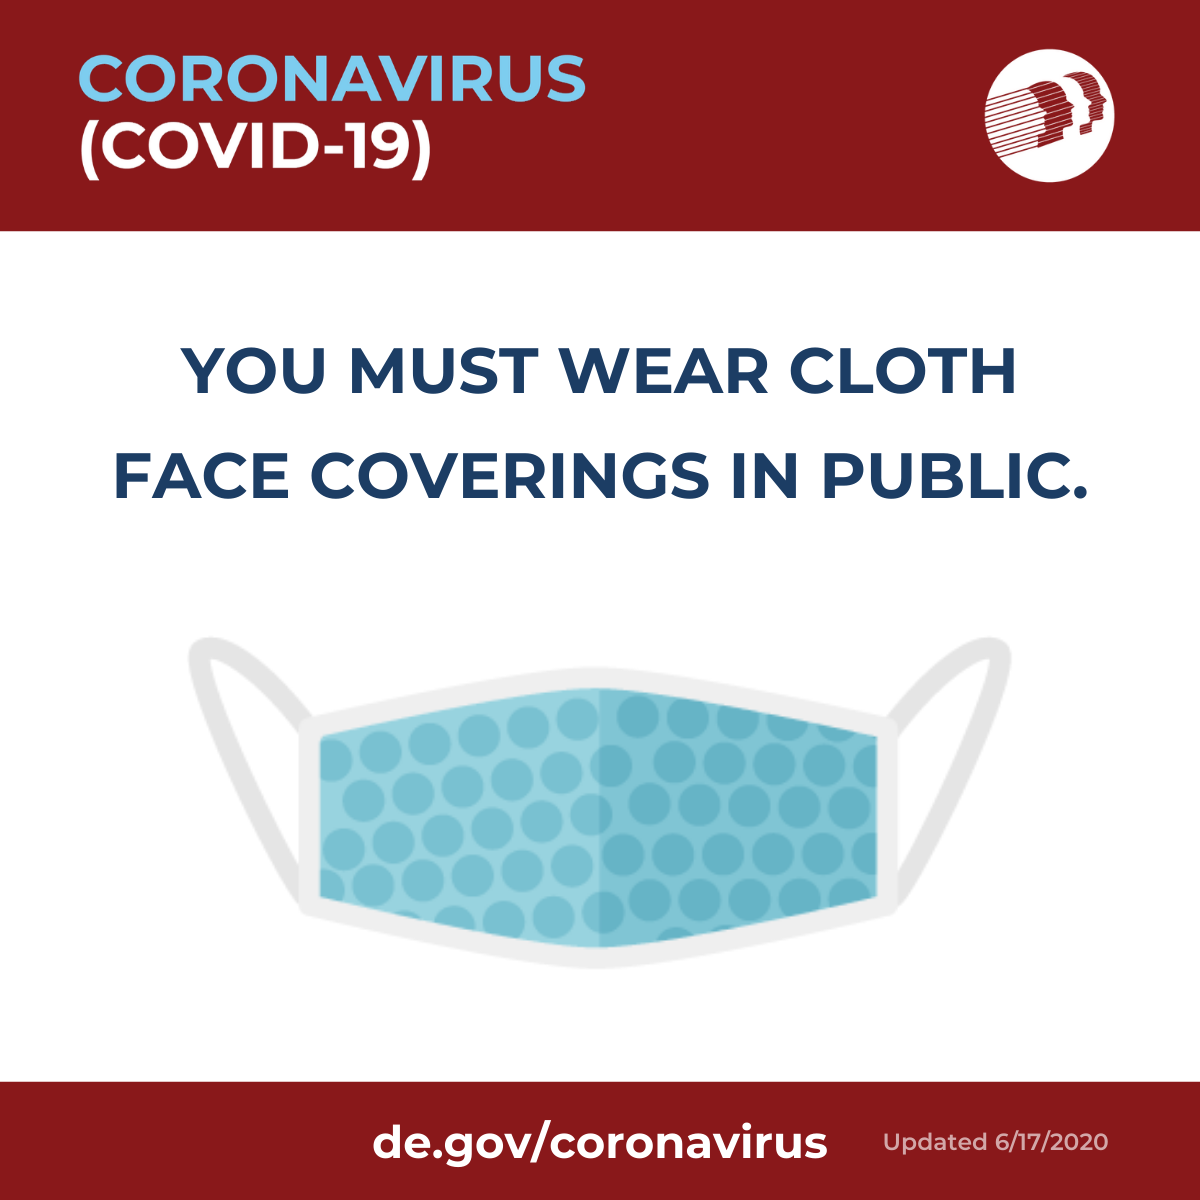 You must wear cloth face coverings in public